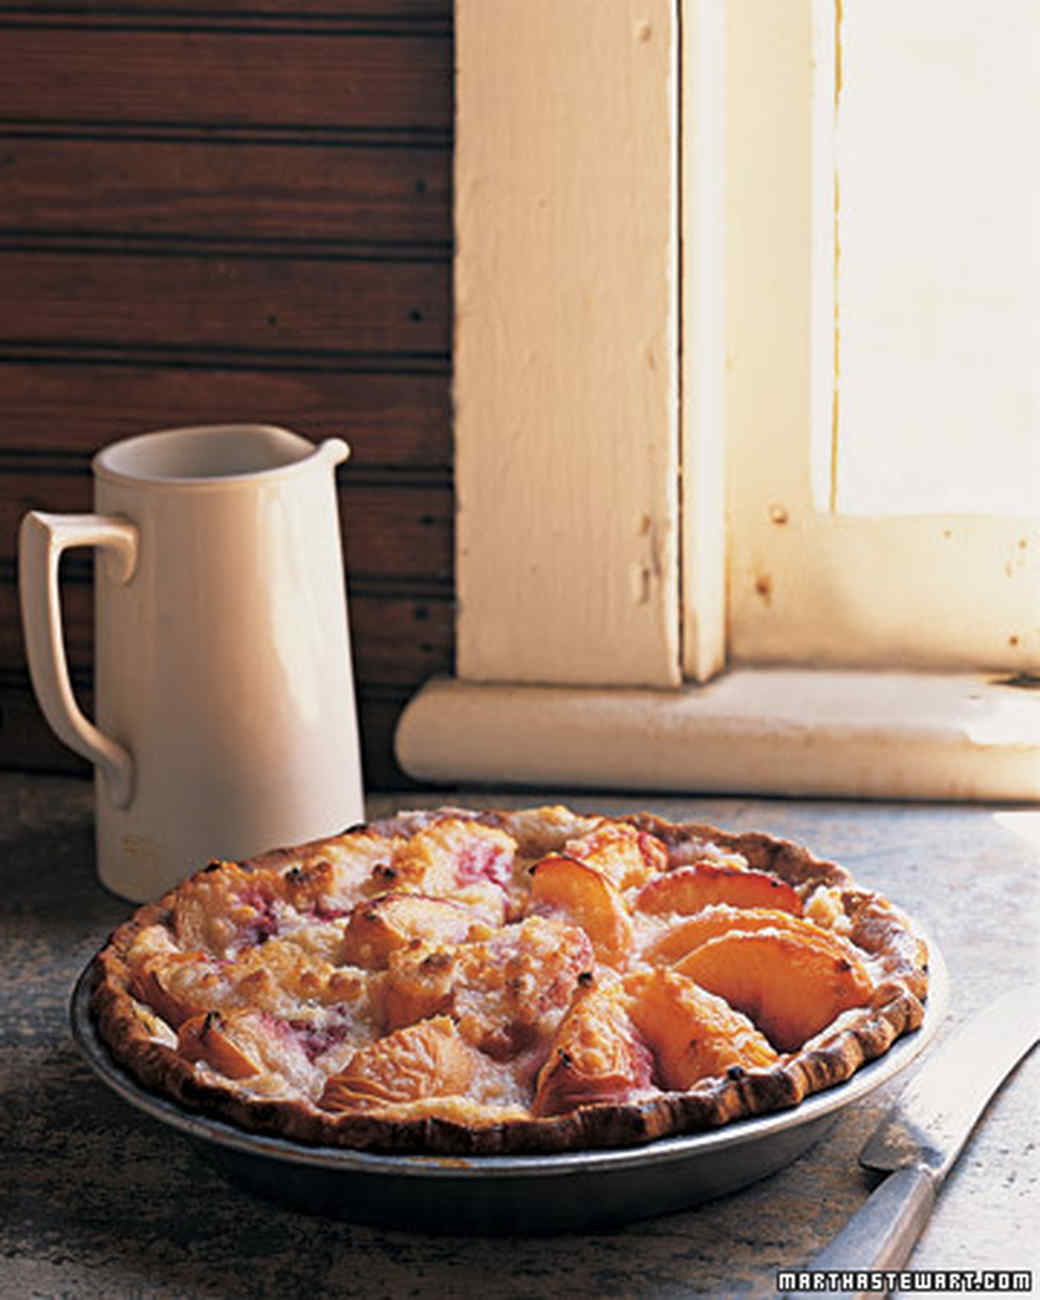 msl_aug06_peach_pie.jpg